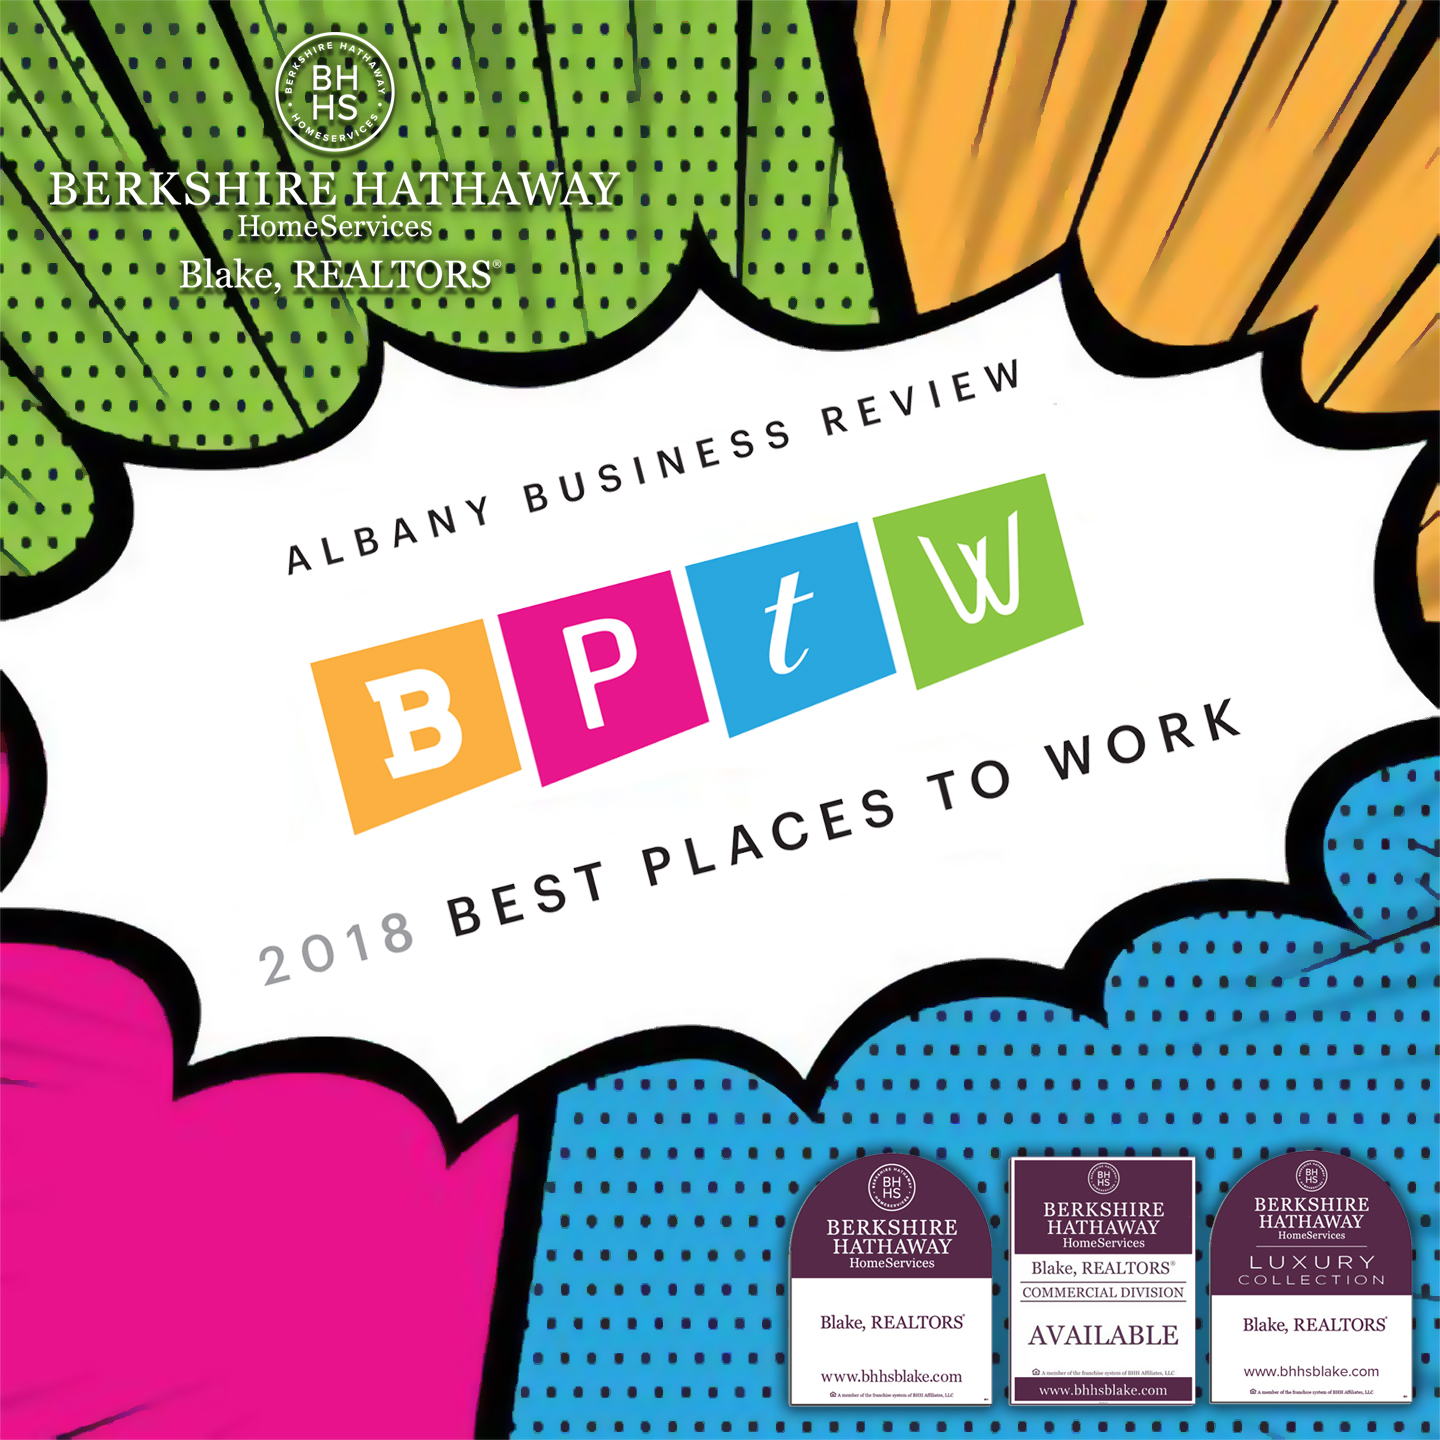 Berkshire Hathaway HomeServices Blake, Realtors named top workplace for 2018 by The Albany Business Review and a 2019 Top Workplace by the Times Union. Contact Lisa Roth  lroth@bhhsblake.com  to learn about a career with our firm.